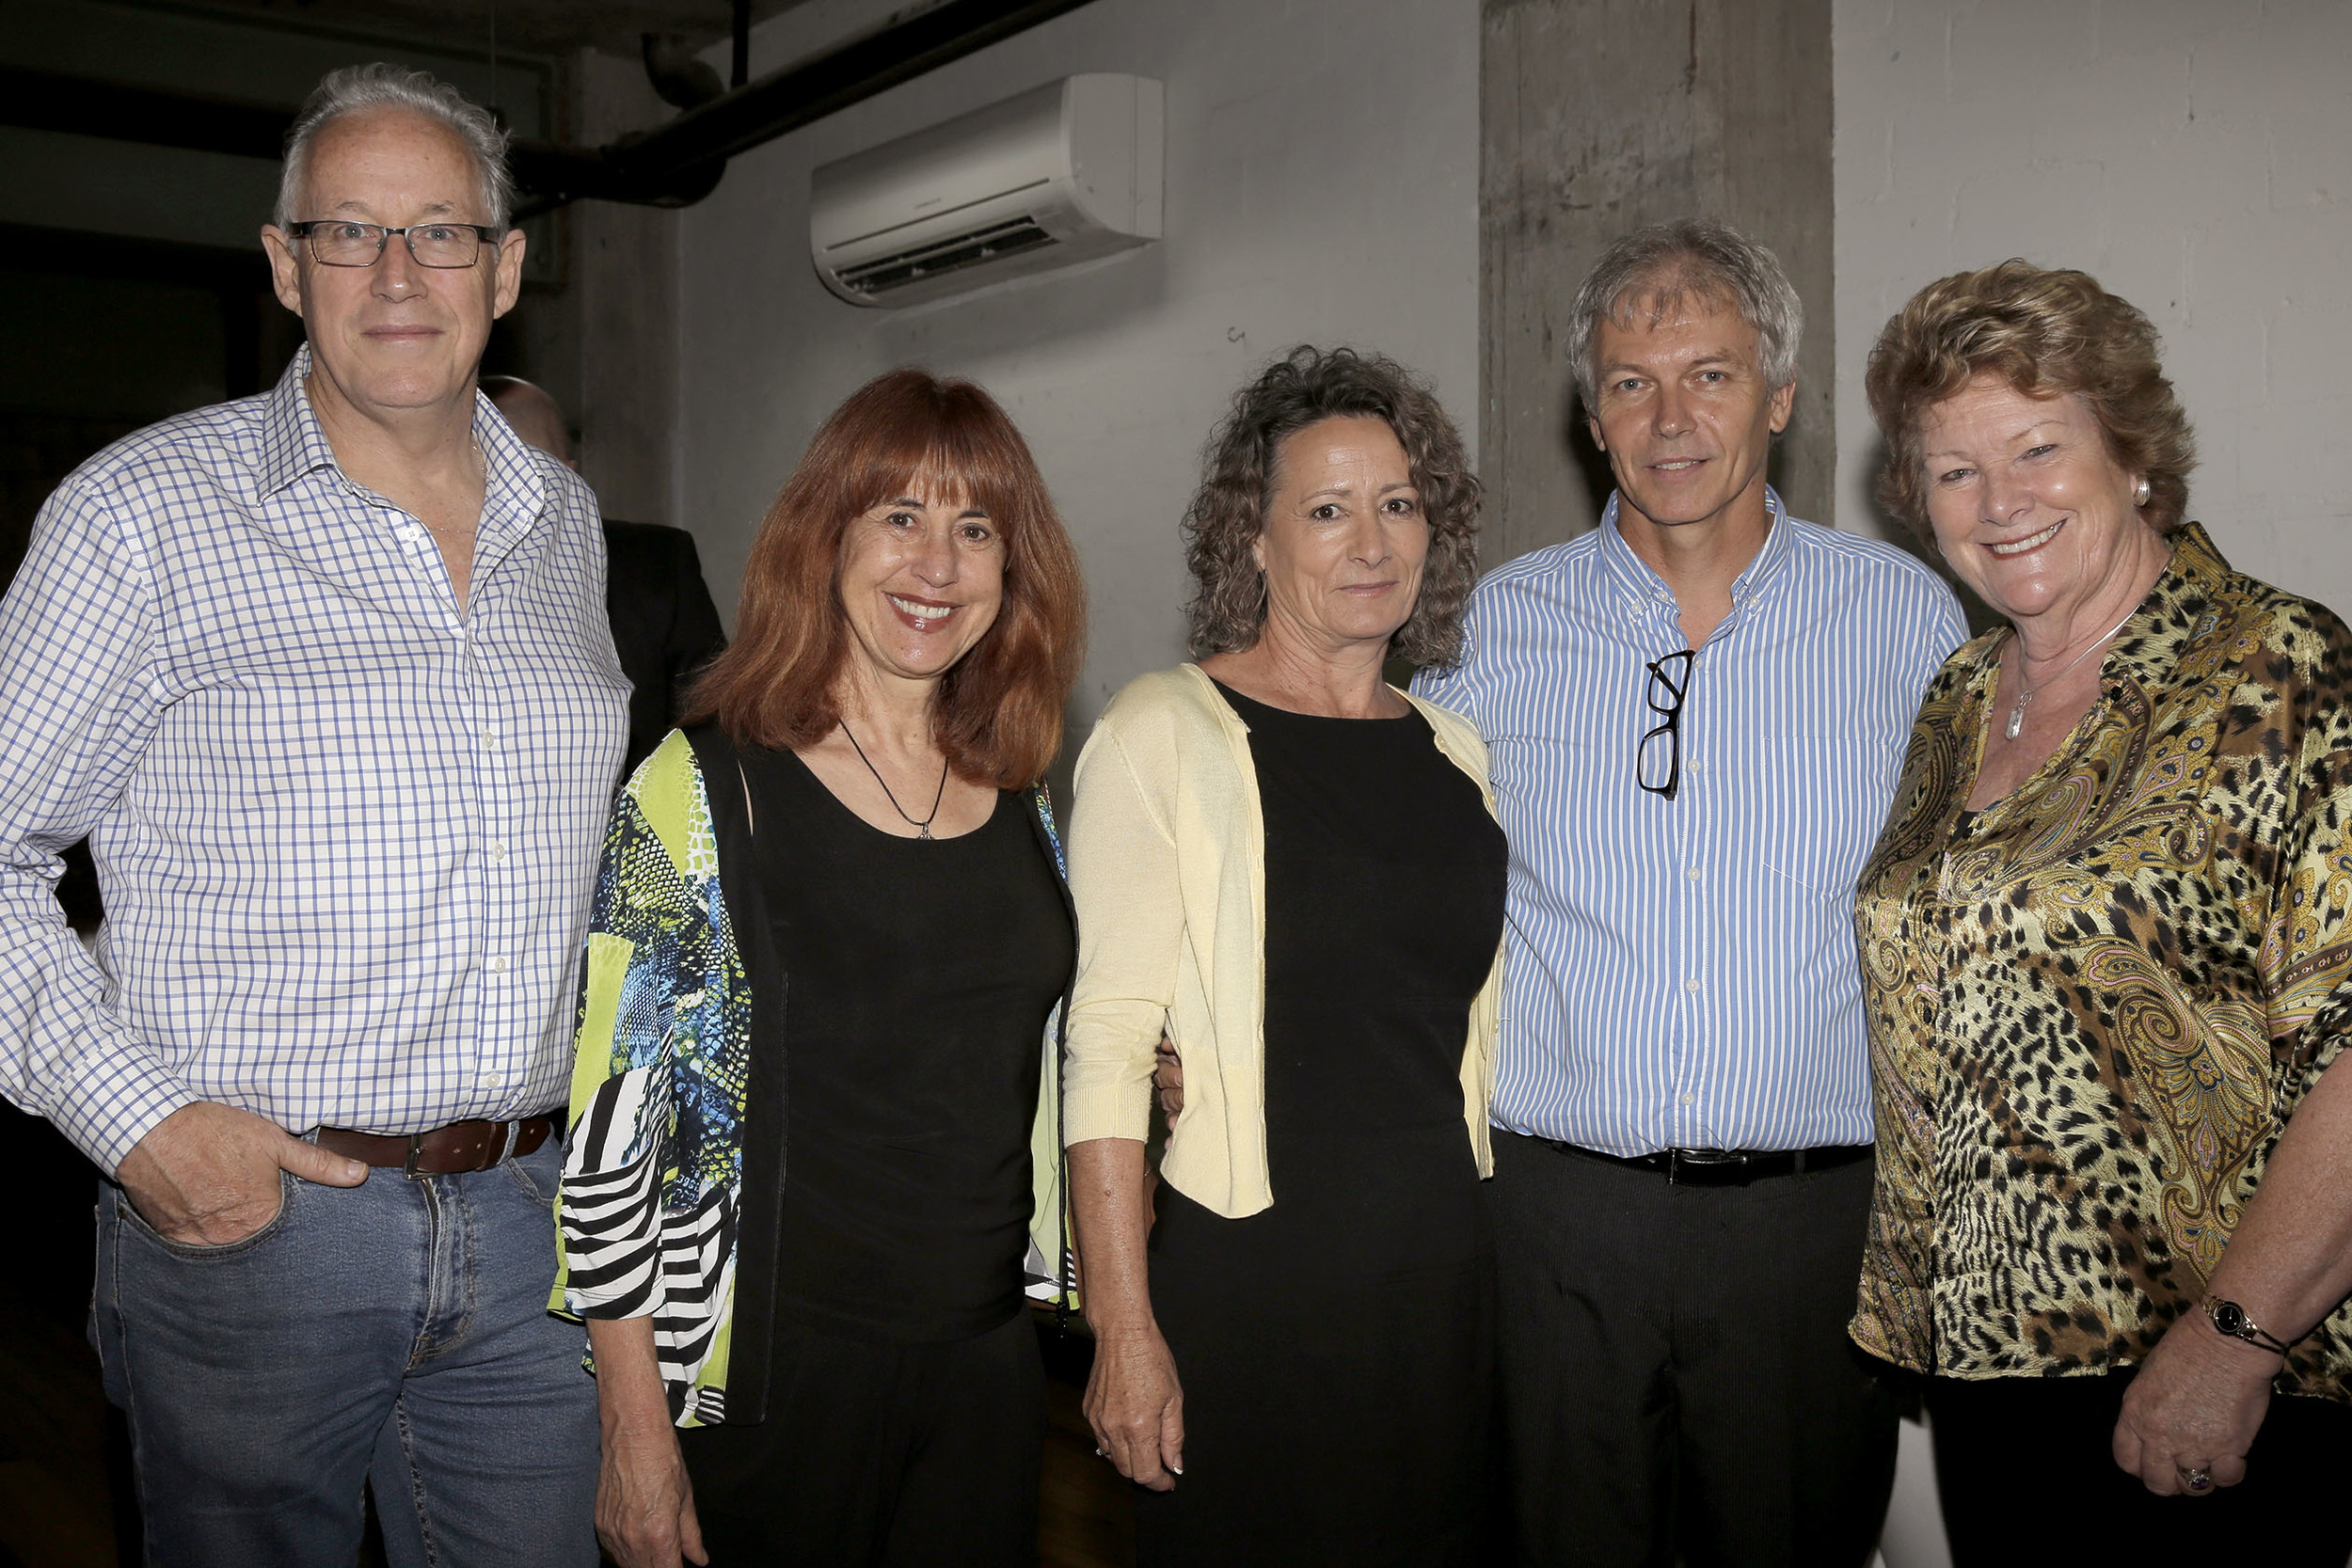 TRISTAN AND KAY (LEFT) WITH JILLIAN SKINNER MP AND VIDEO PARTICIPANTS, AT LAUNCH OF THE PEACH VIDEO.